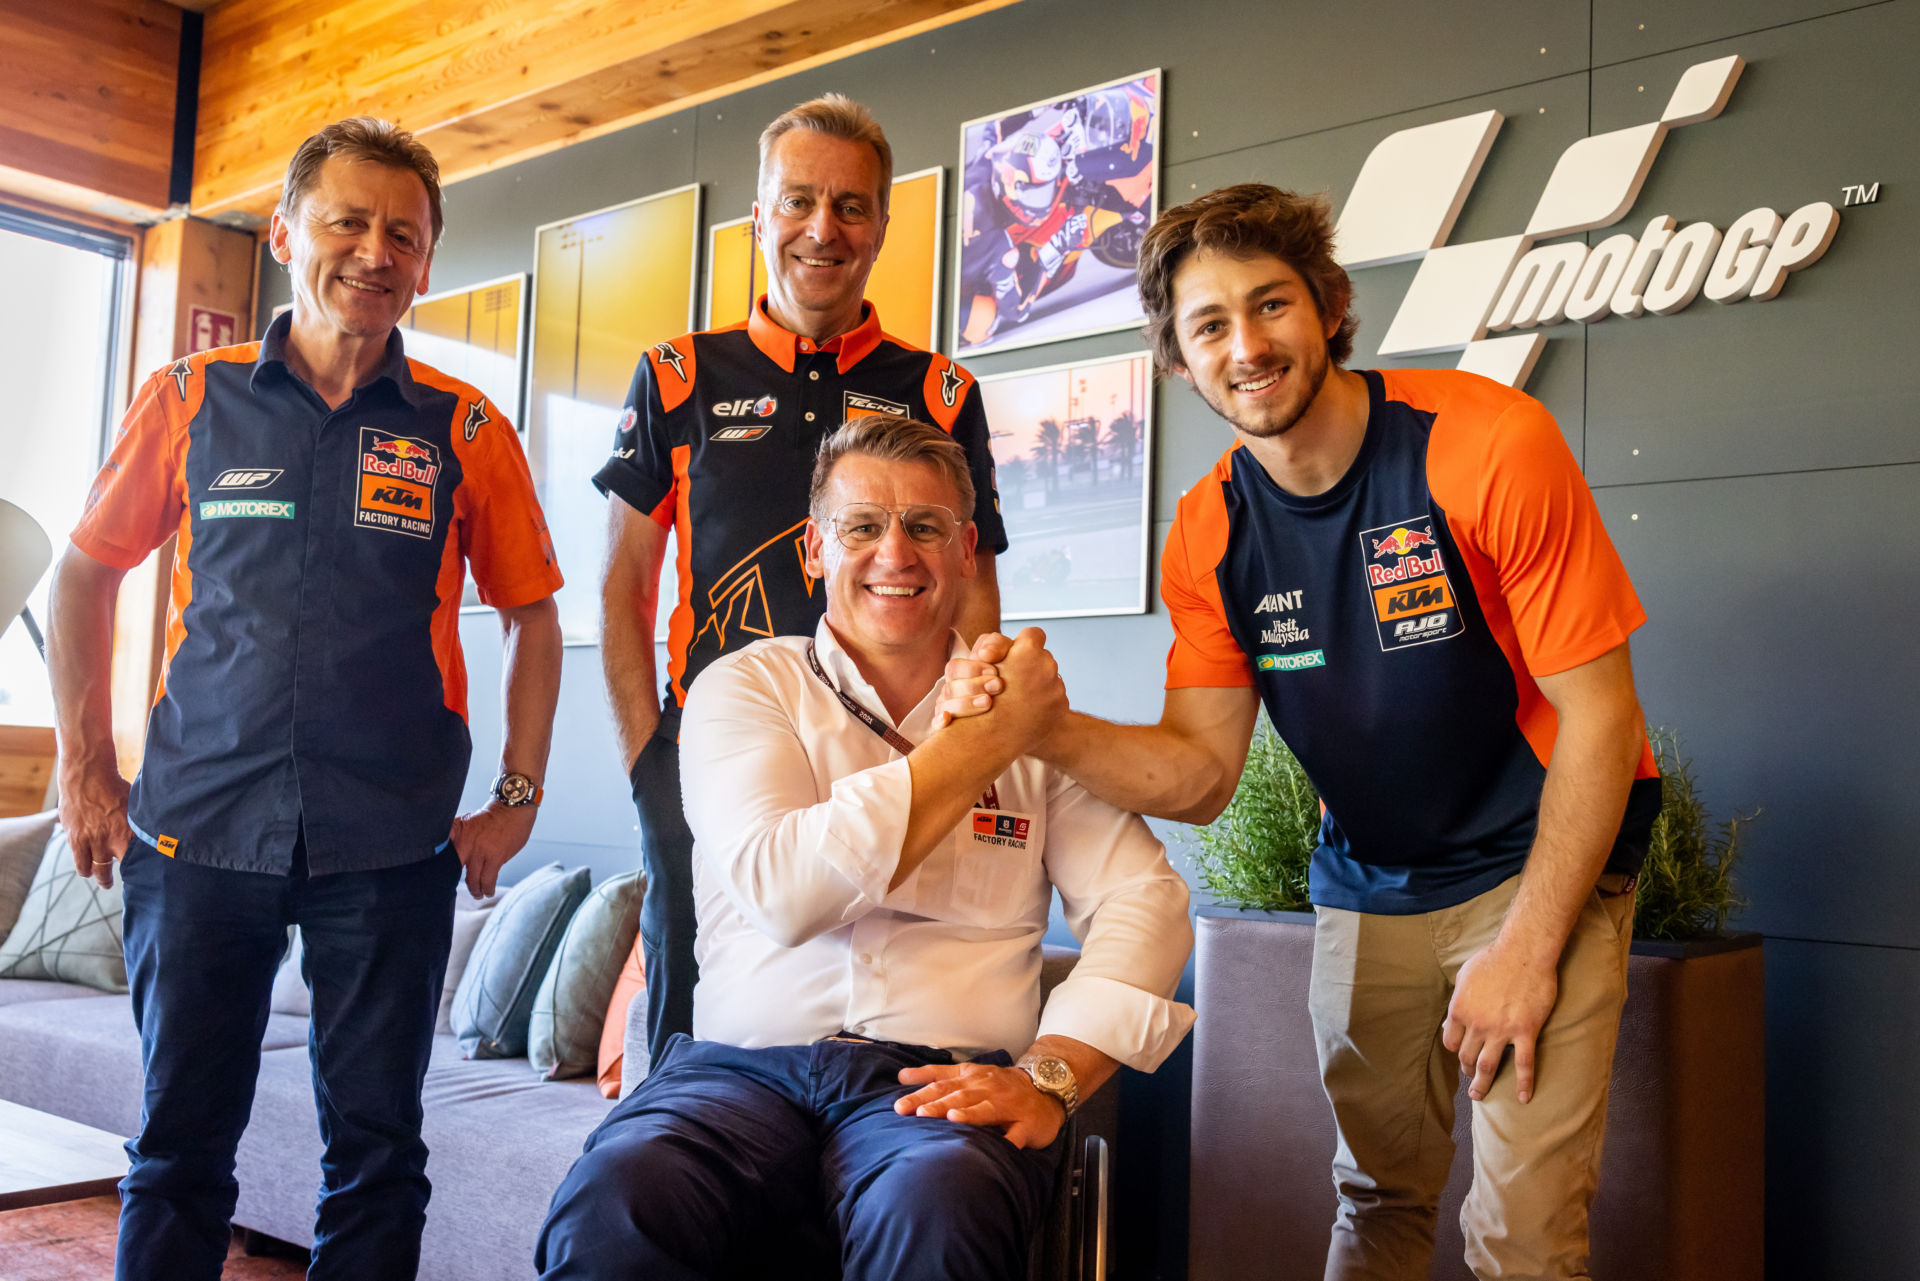 (From left): Red Bull KTM Team Manager Mike Leitner, Tech3 Racing Team Owner Hervé Poncharal, KTM Motorsports Director Pit Beirer, and Remy Gardner. Photo by Polarity Photo, courtesy KTM.